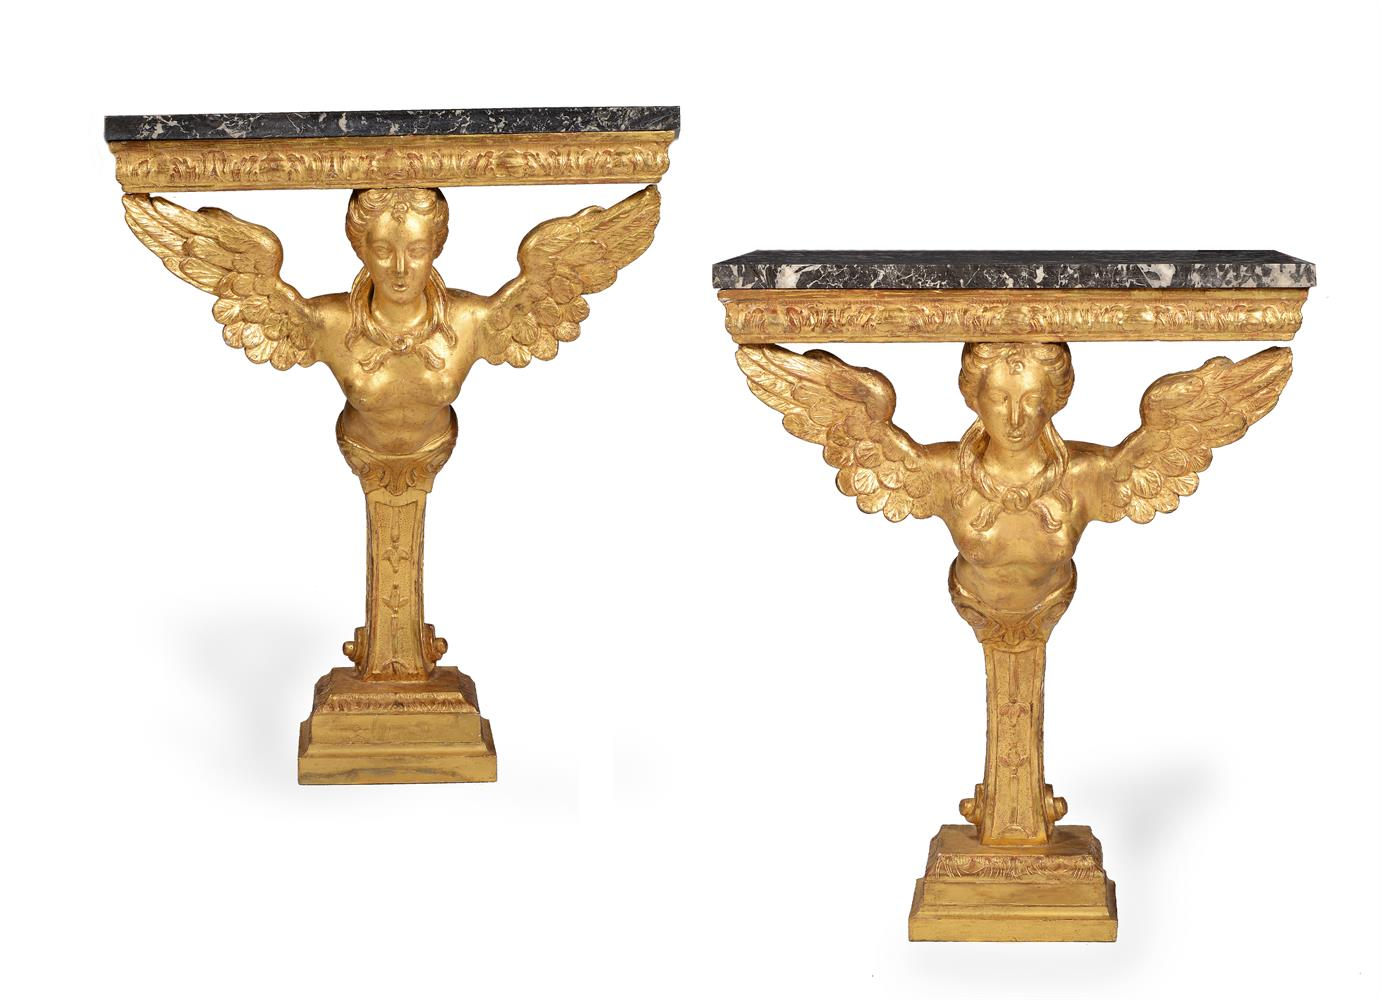 A PAIR OF GILTWOOD CONSOLE TABLES, SECOND QUARTER 18TH CENTURY AND LATER - Image 2 of 7